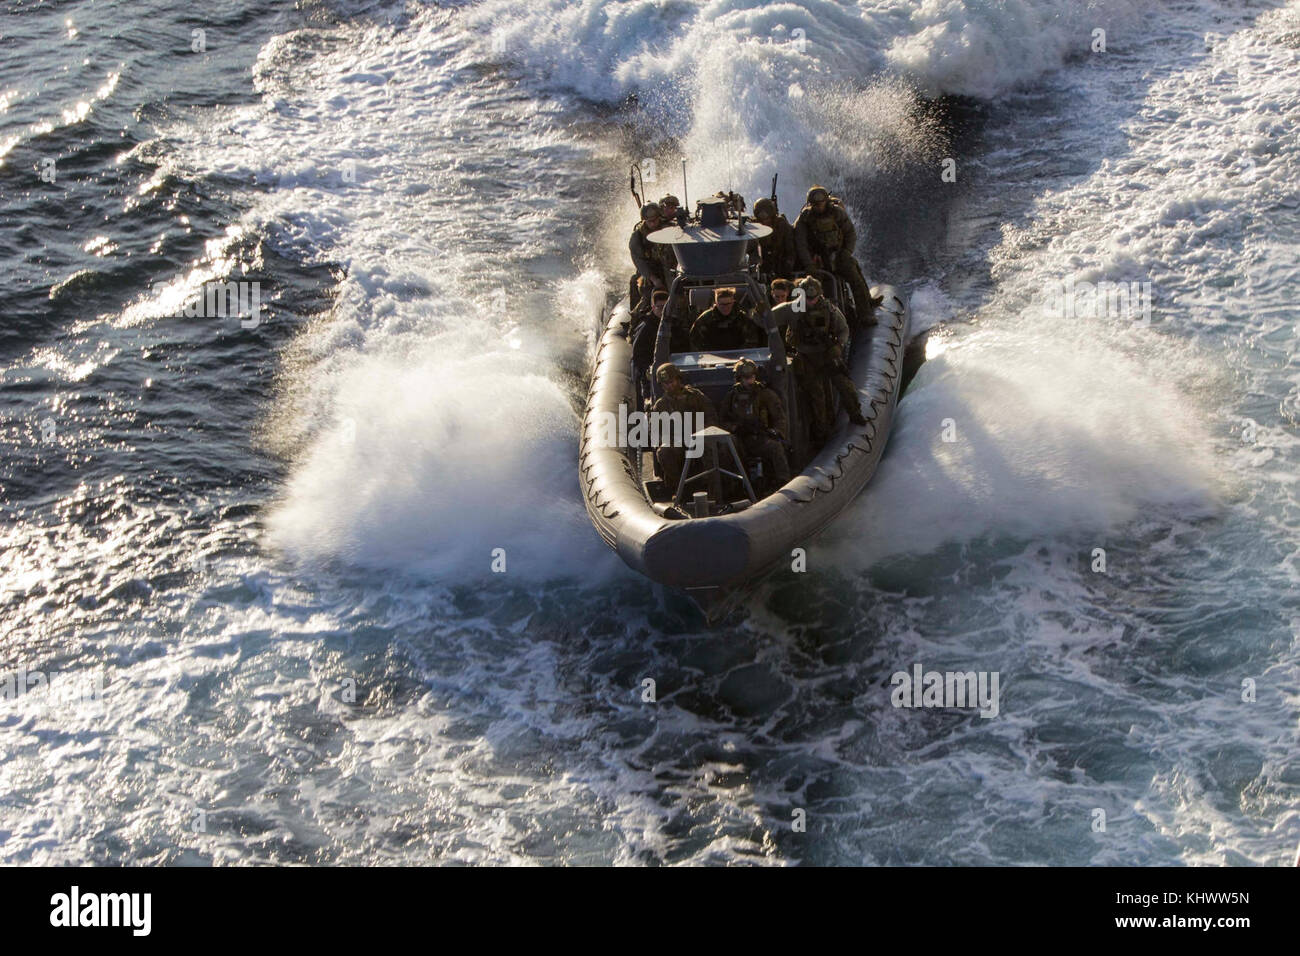 U.S. Marines with the Maritime Raid Force (MRF), 26th Marine Expeditionary Unit (MEU), approach the amphibious transport Stock Photo